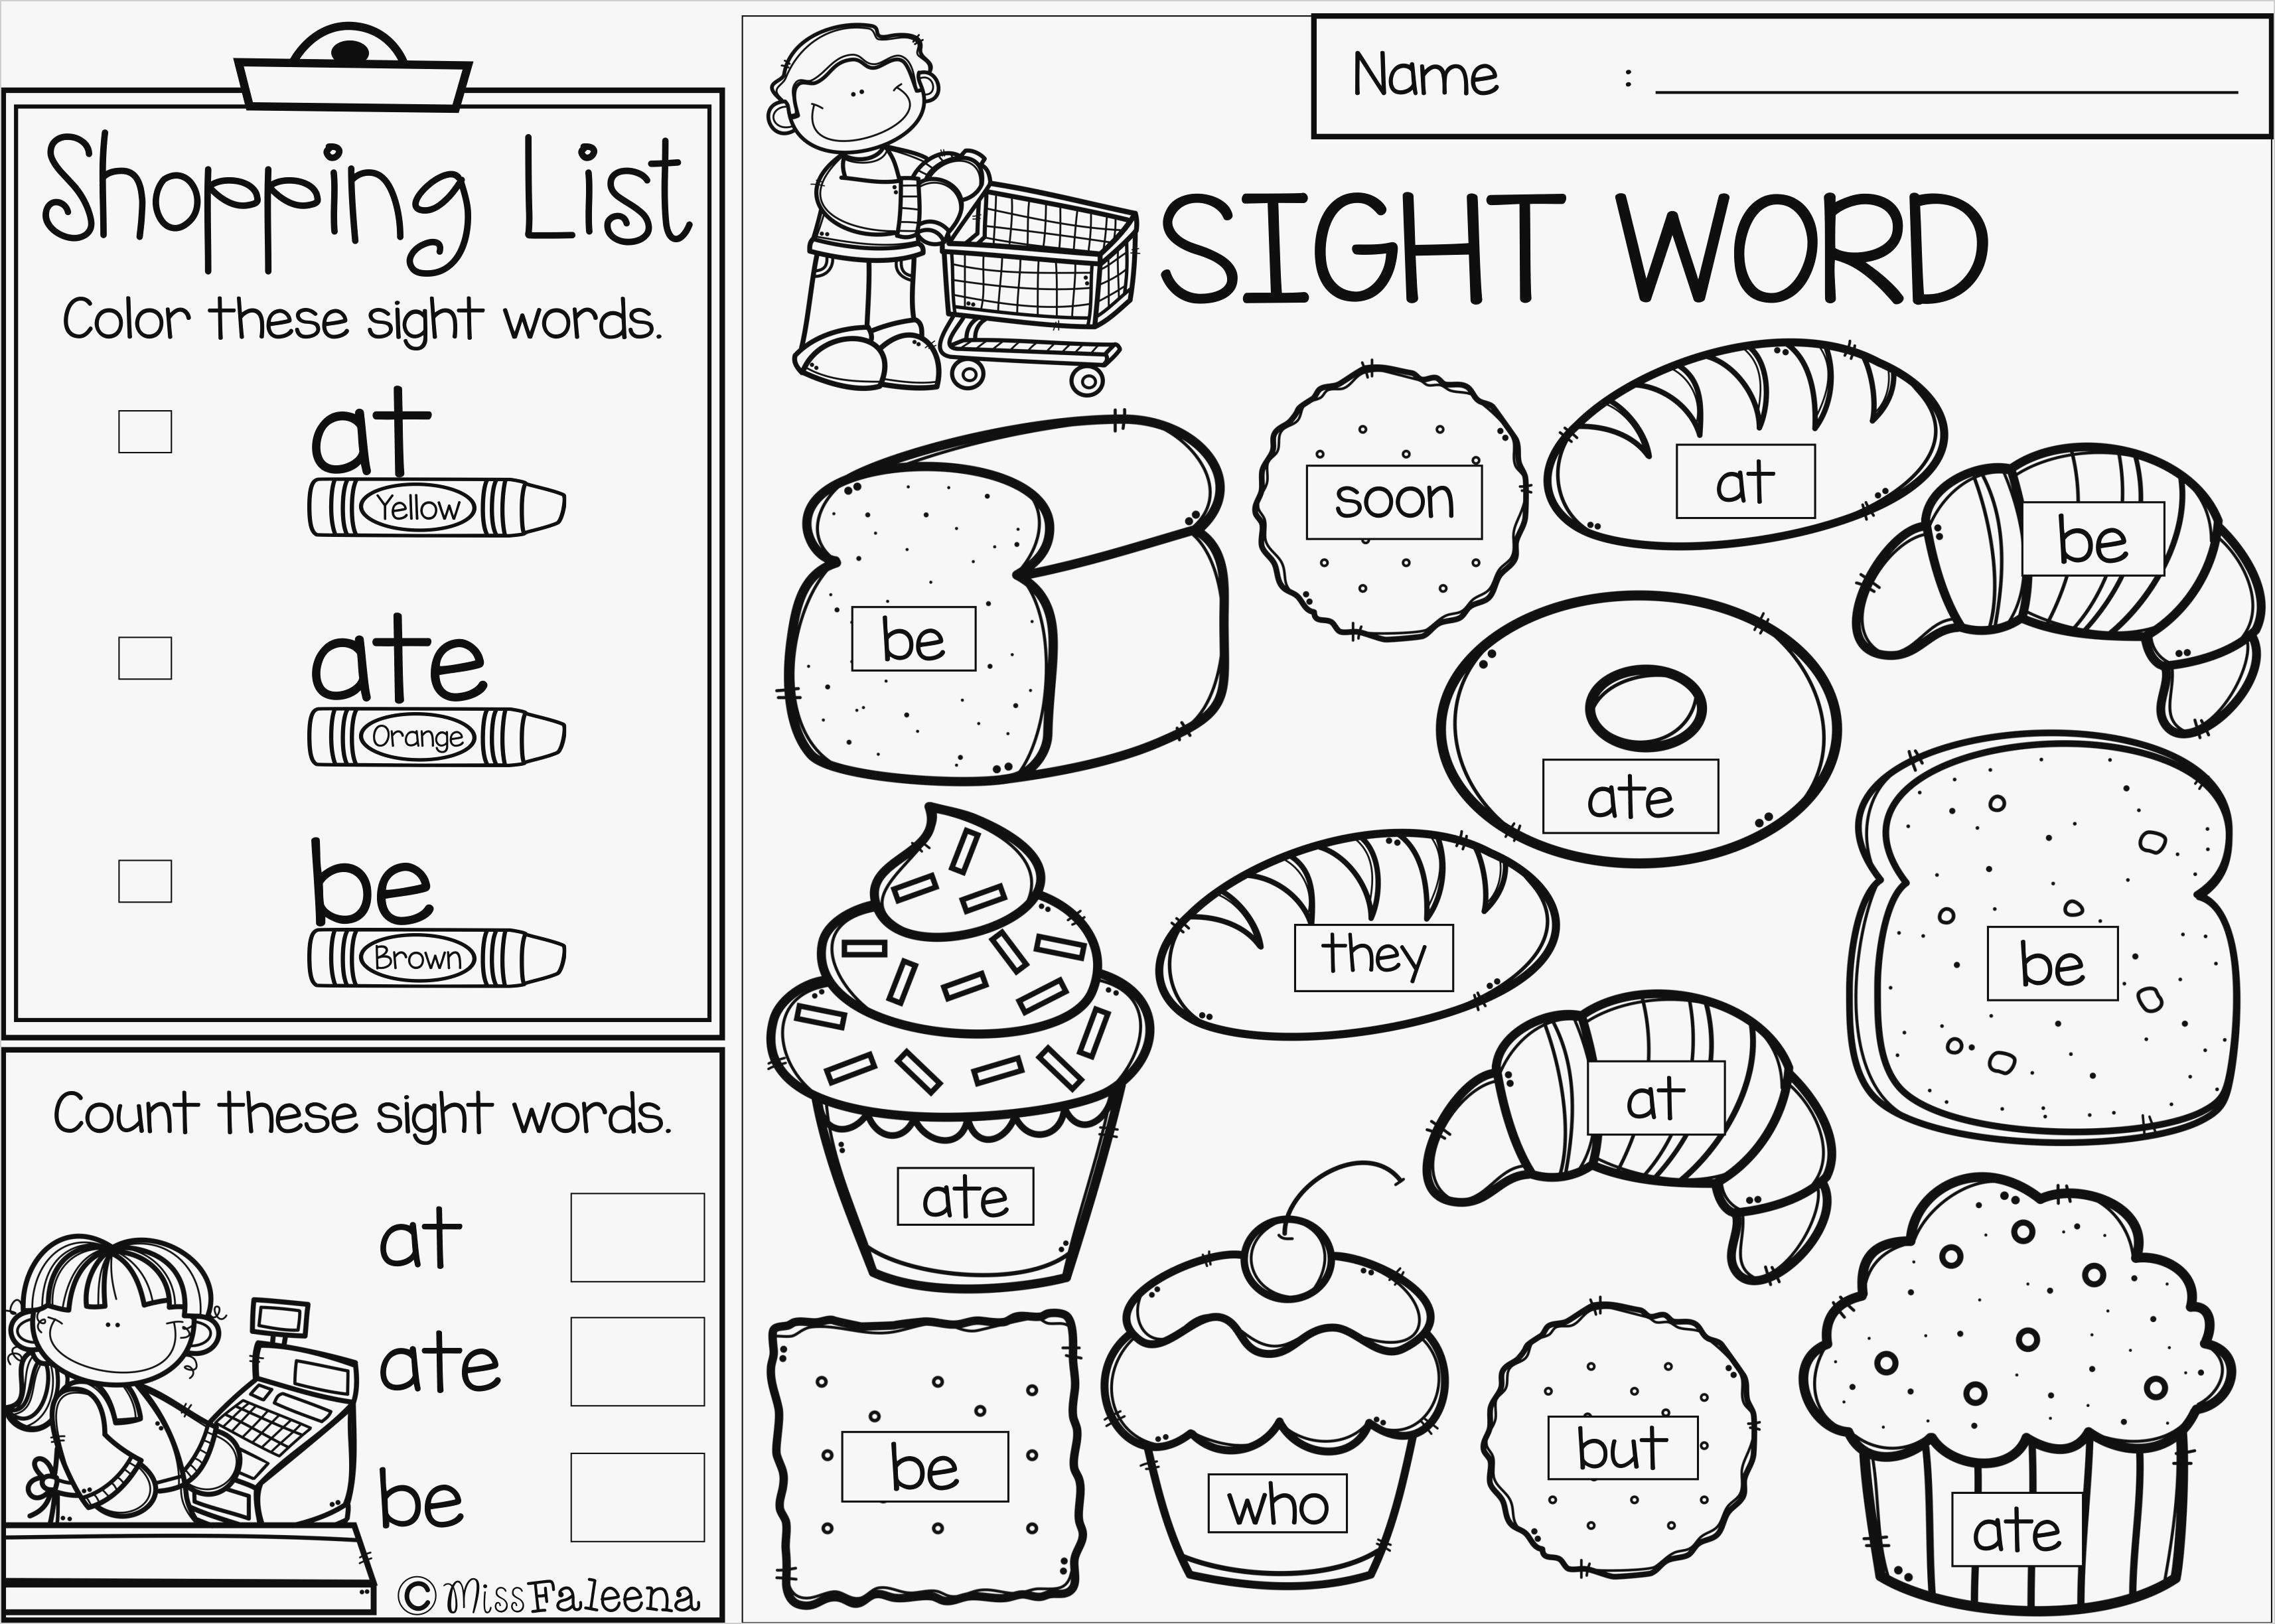 kindergarten sight words coloring pages Download-Sight Word Coloring Pages Kindergarten Fresh Sight Word Coloring 1 7-c